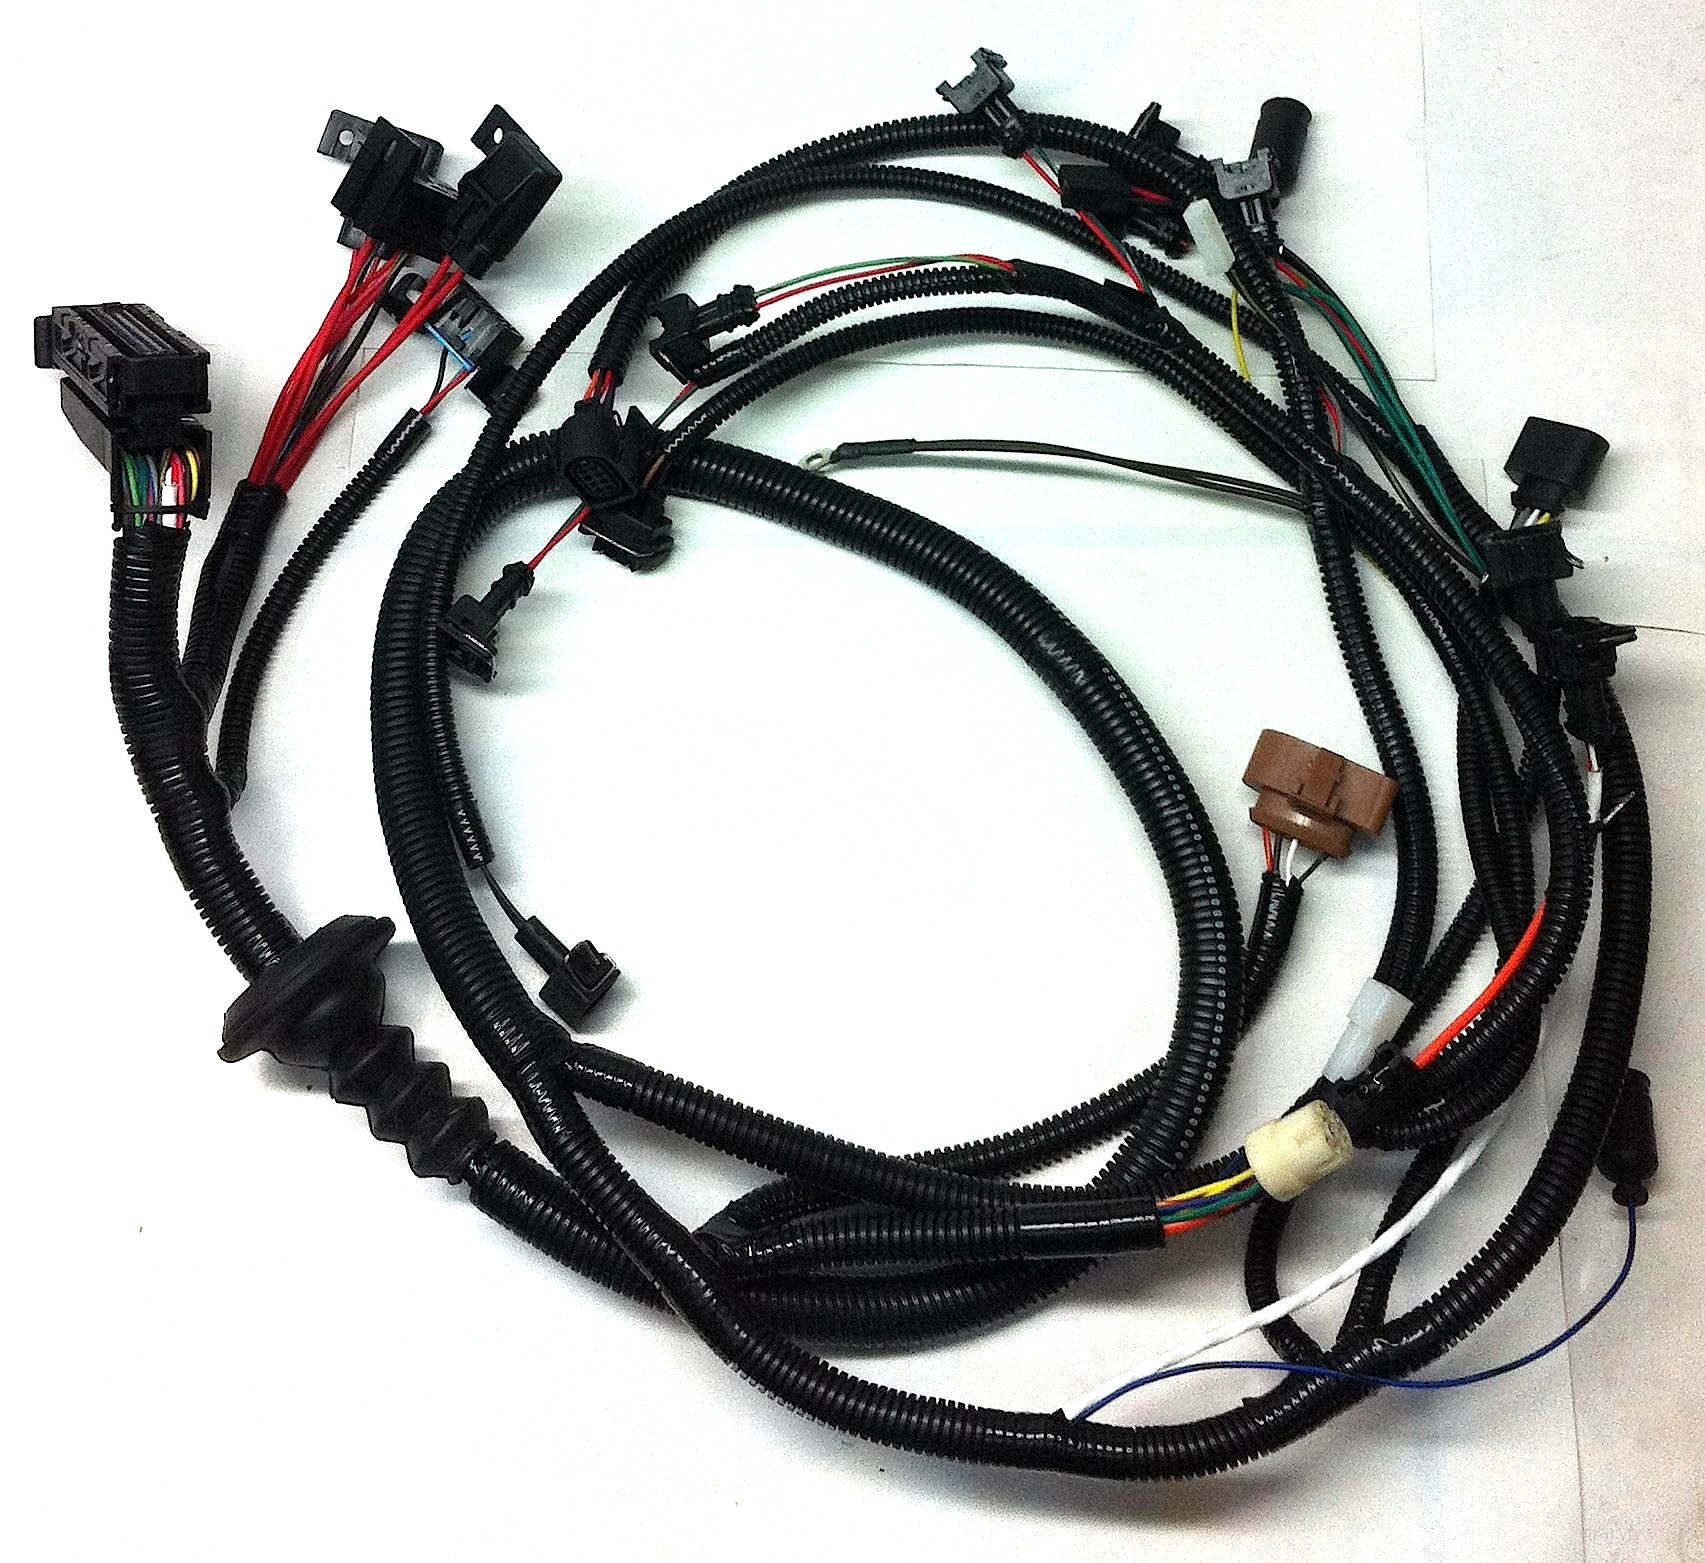 Wiring_Harness_2LR 2lr tiico conversion wiring harness foreign auto & supply, inc car wiring harness at nearapp.co